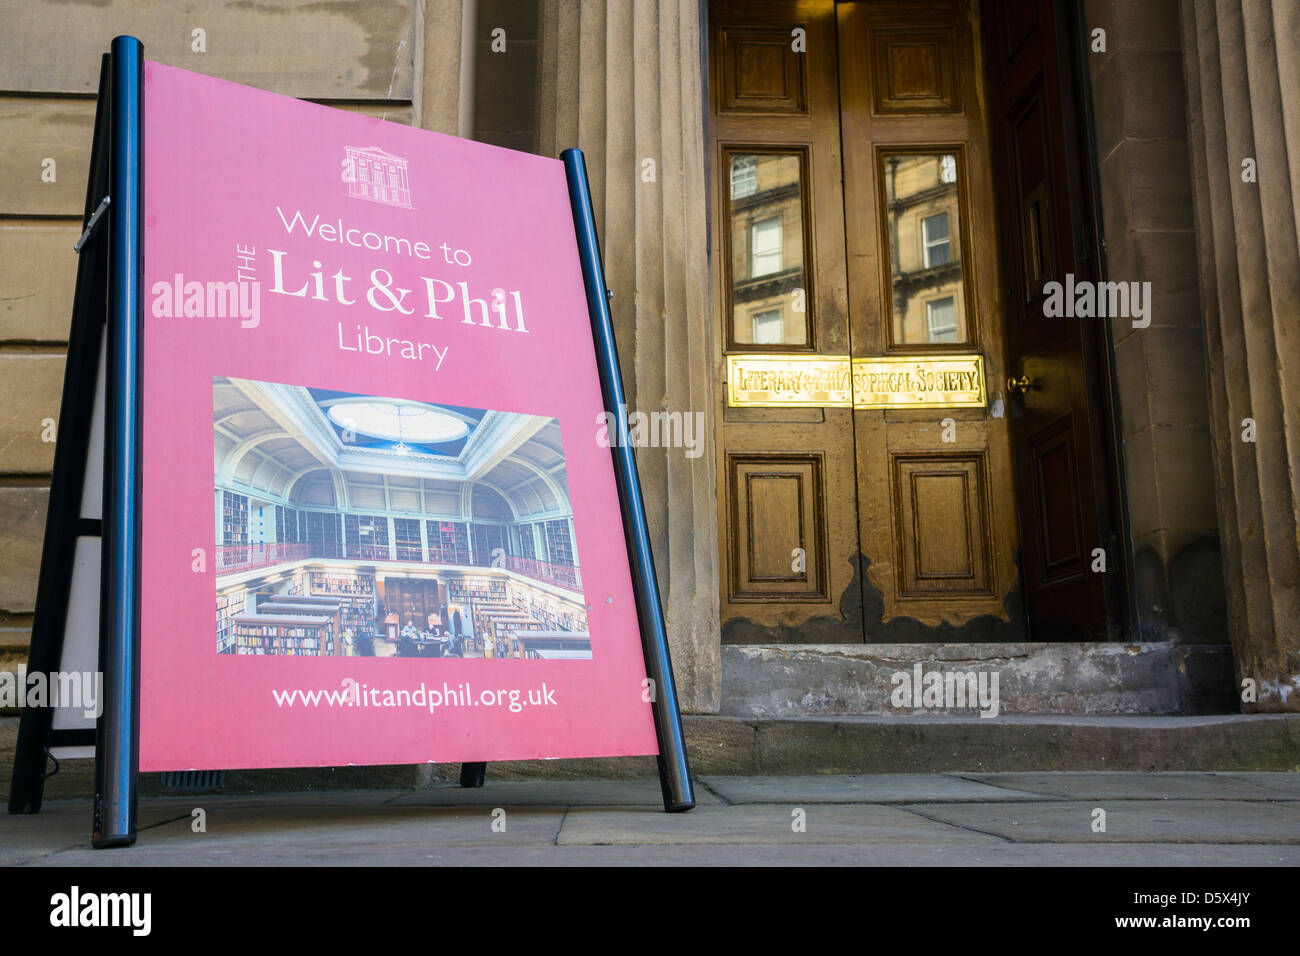 The Lit and Phil Library (Literary & Philosophical Society) in Newcastle is the largest independent library - Stock Image